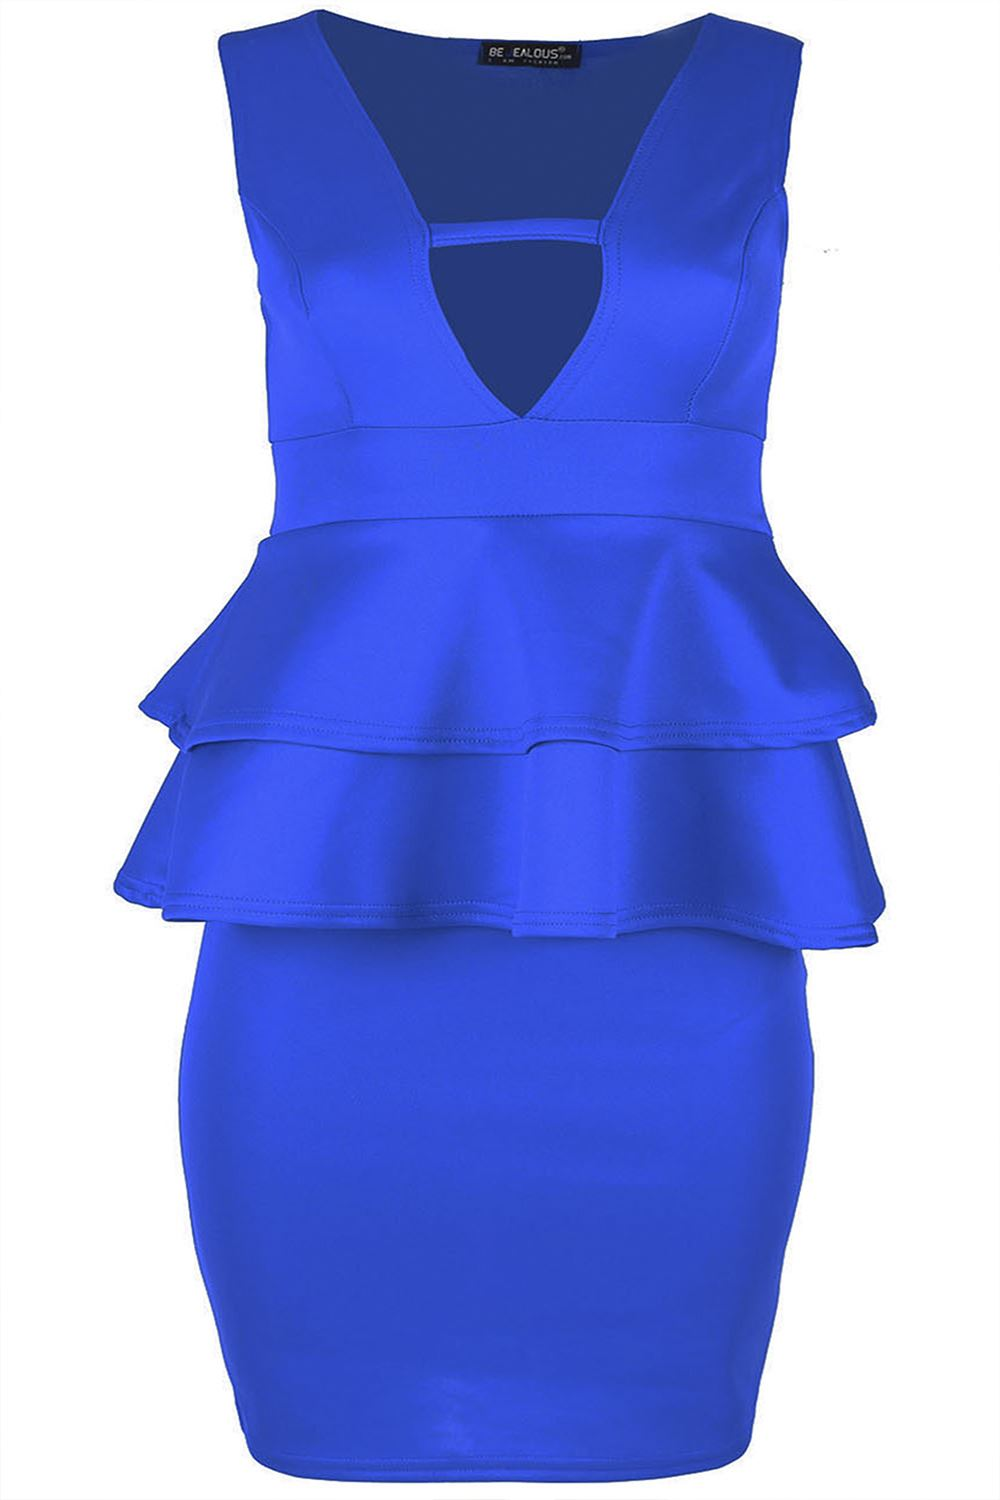 Womens Ladies Sleeveless Flare V Neck Peplum Frill Bodycon Mini Dress Plus Sizes